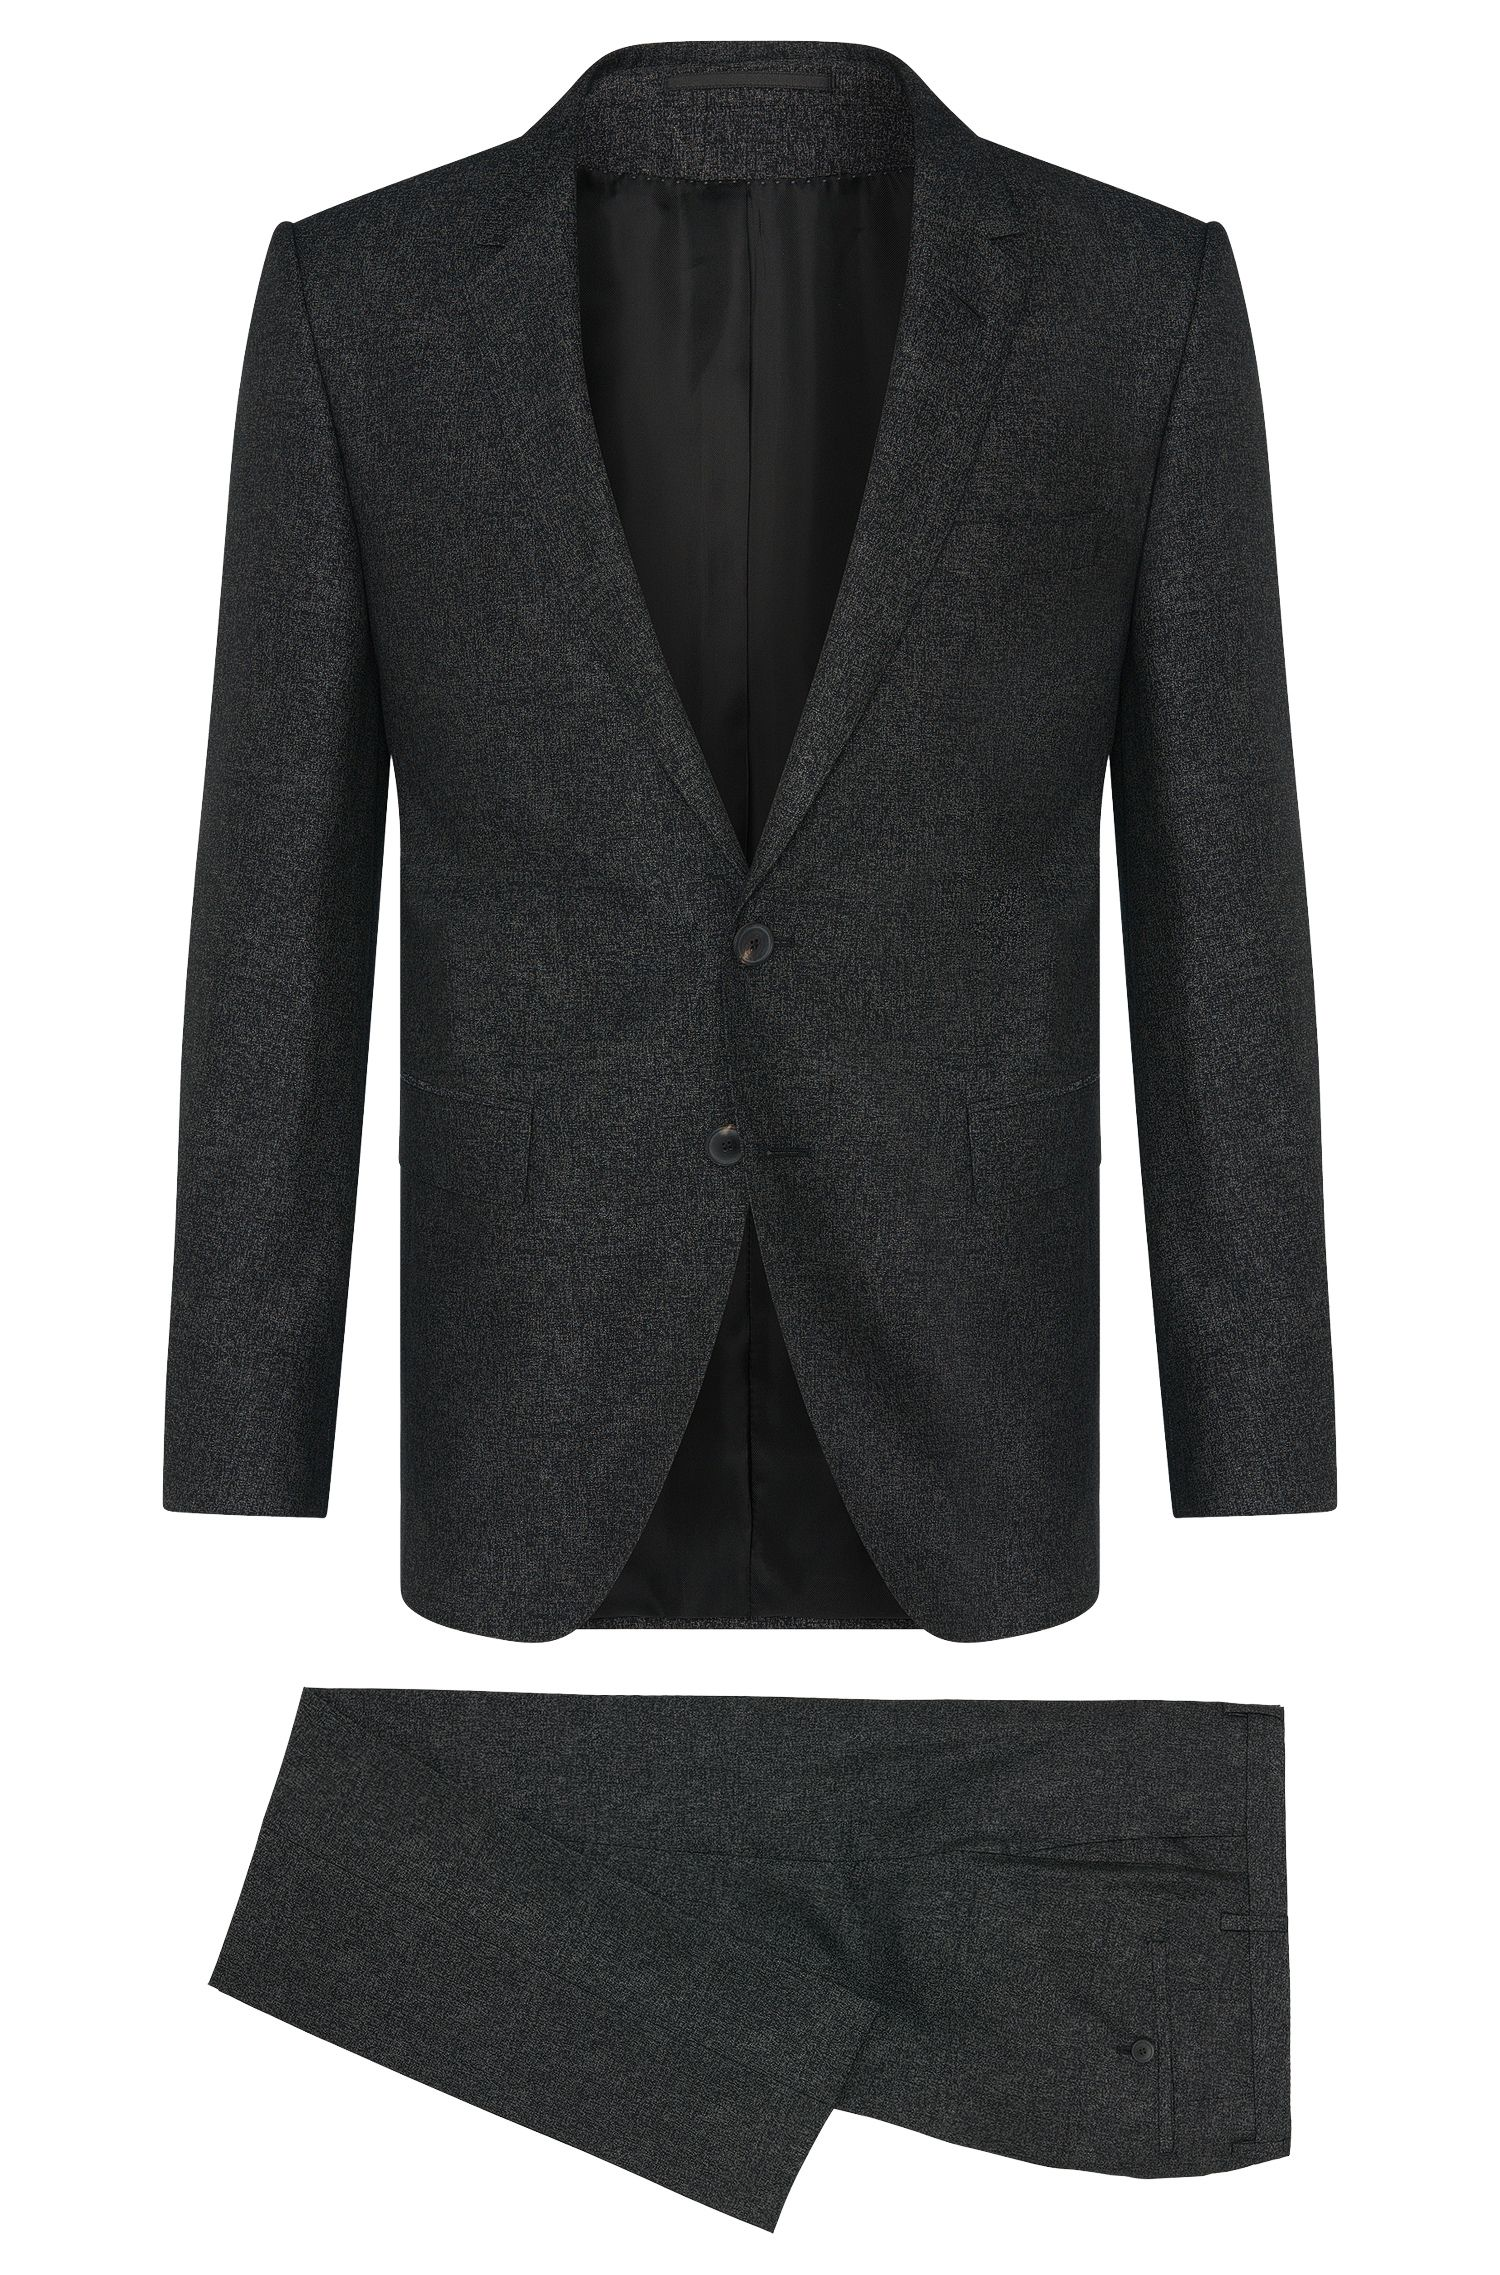 'T-Reeve/Wain' | Extra-Slim Fit, Italian Wool Silk Blend Suit